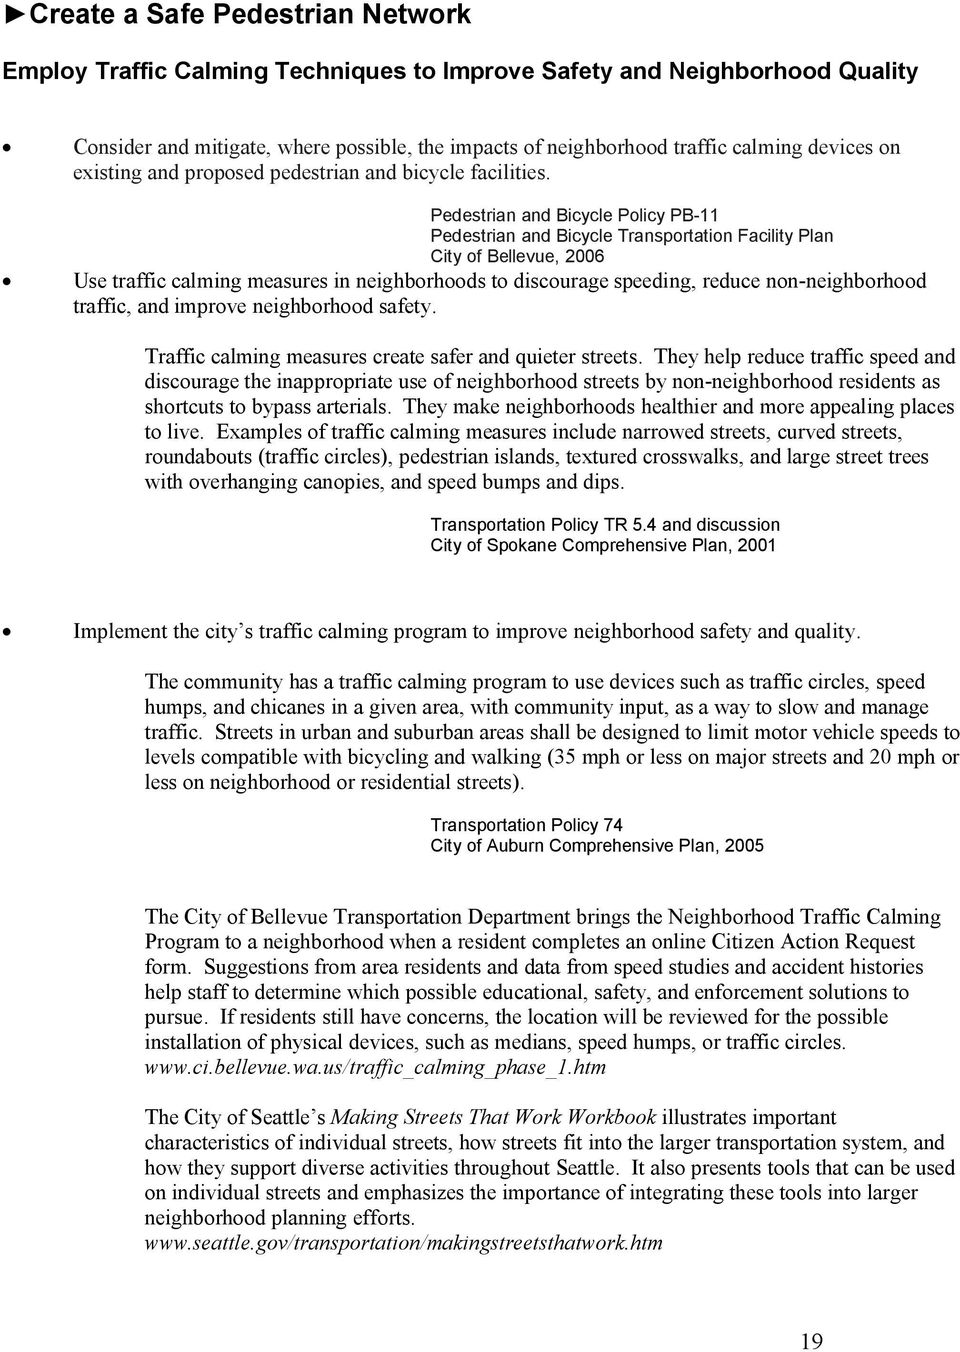 Pedestrian and Bicycle Policy PB-11 Pedestrian and Bicycle Transportation Facility Plan City of Bellevue, 2006 Use traffic calming measures in neighborhoods to discourage speeding, reduce